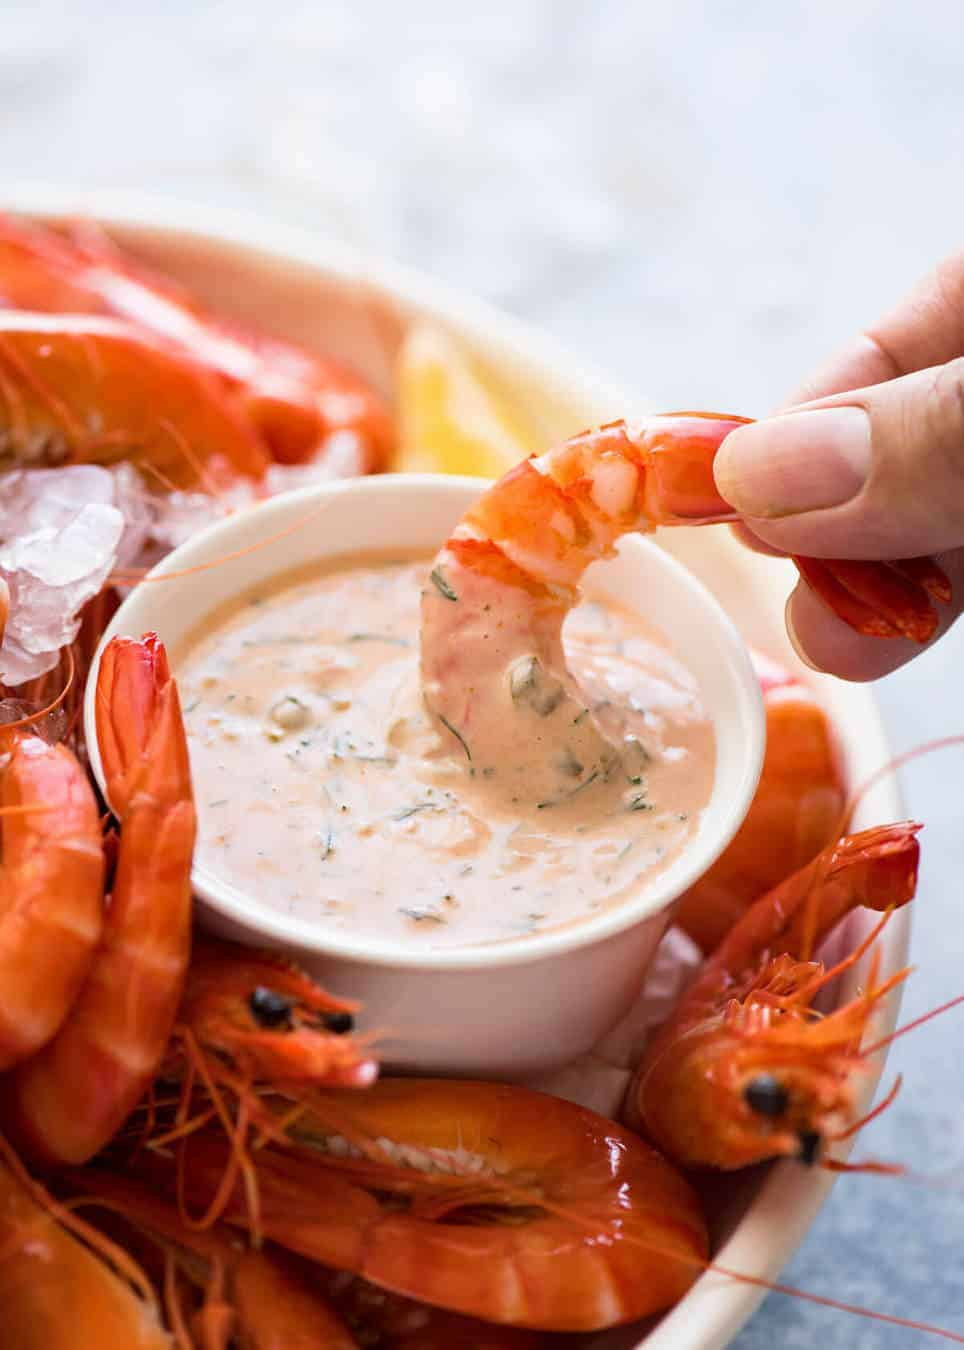 Our favourite Dipping Sauce for Prawns (Shrimp), essentially a jacked up Marie Rose / Thousand Island sauce. www.recipetineats.com